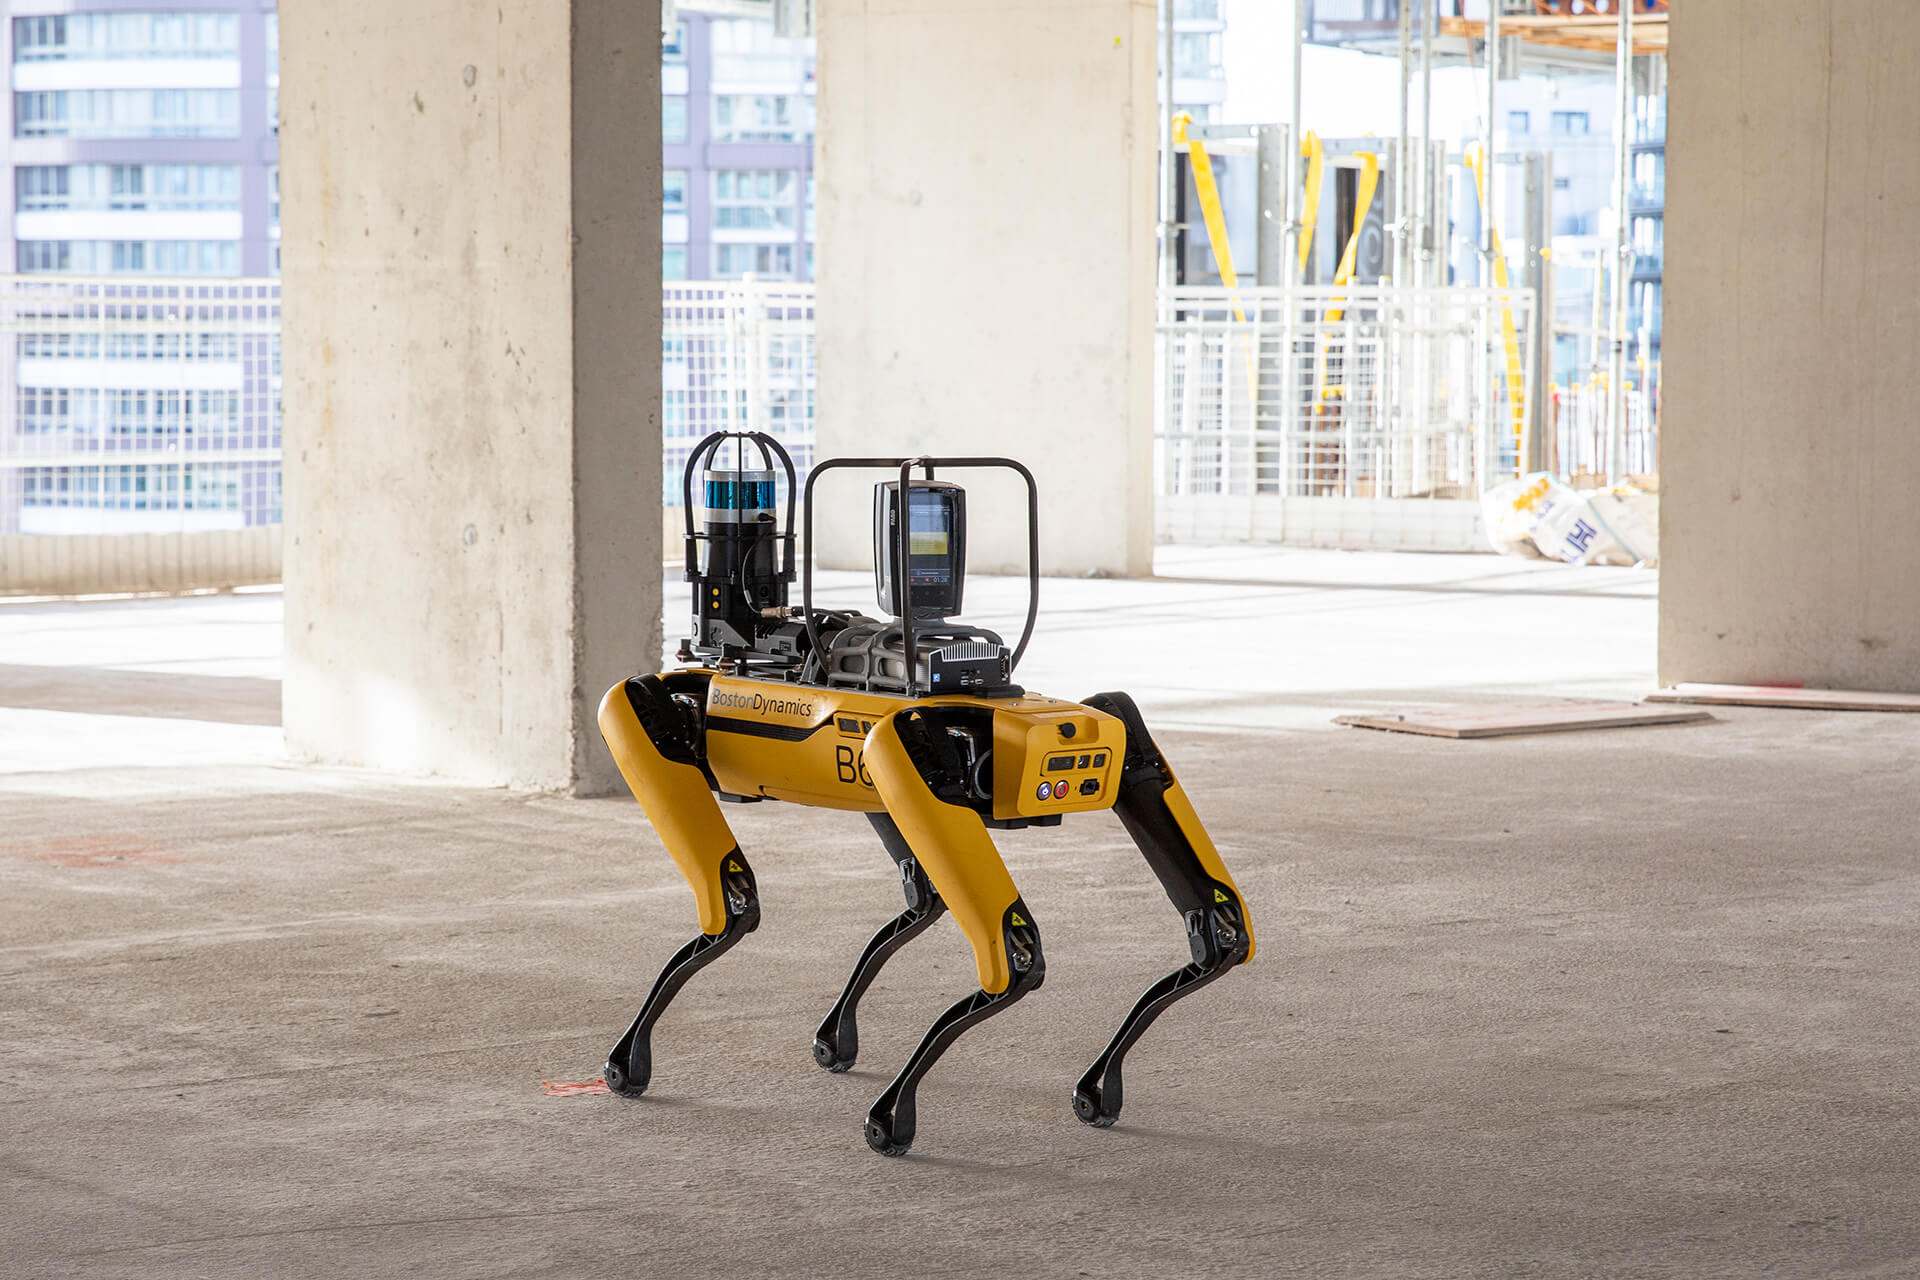 SPOT is terrain agnostic and can operate on pre-devised routes allowing for precise monitoring | SPOT Robotic Dog | Foster+Partners and Boston Dynamics | STIRworld